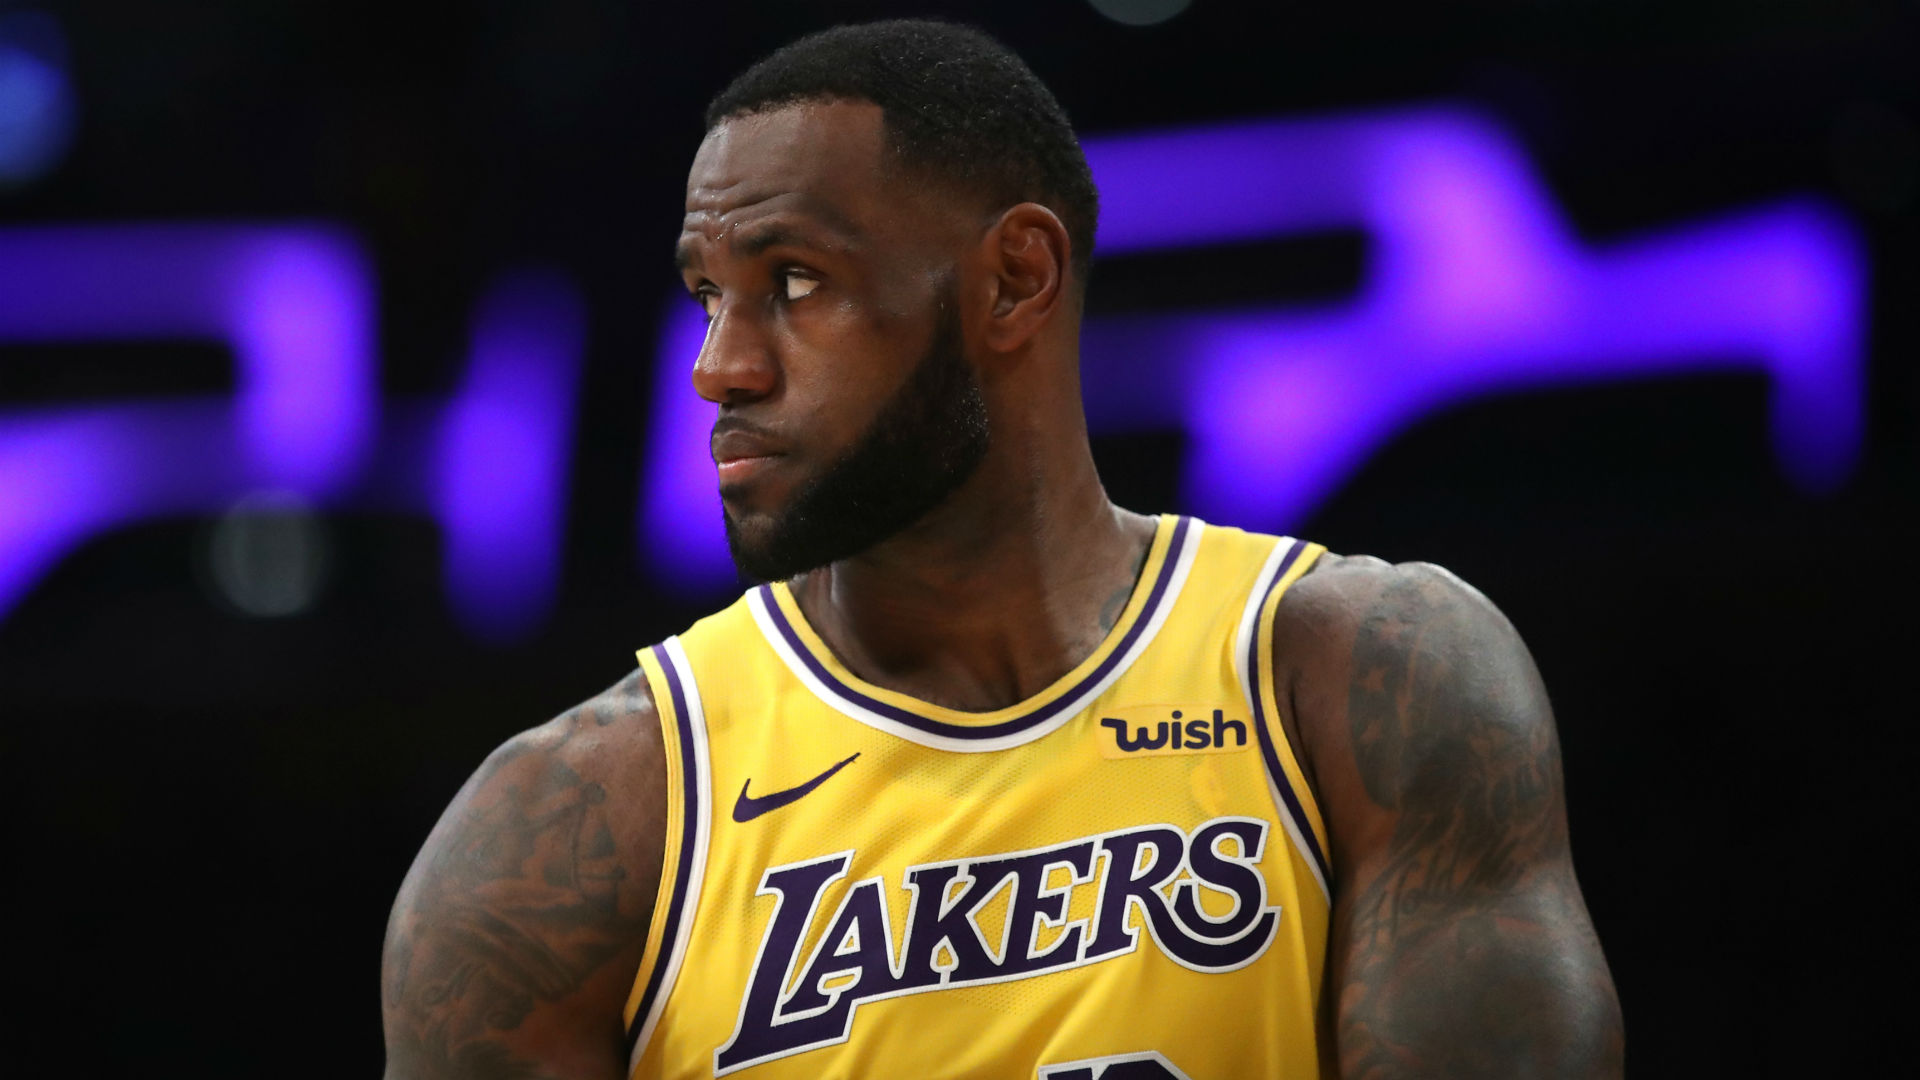 LeBron James disputes reported rift with Lakers front office